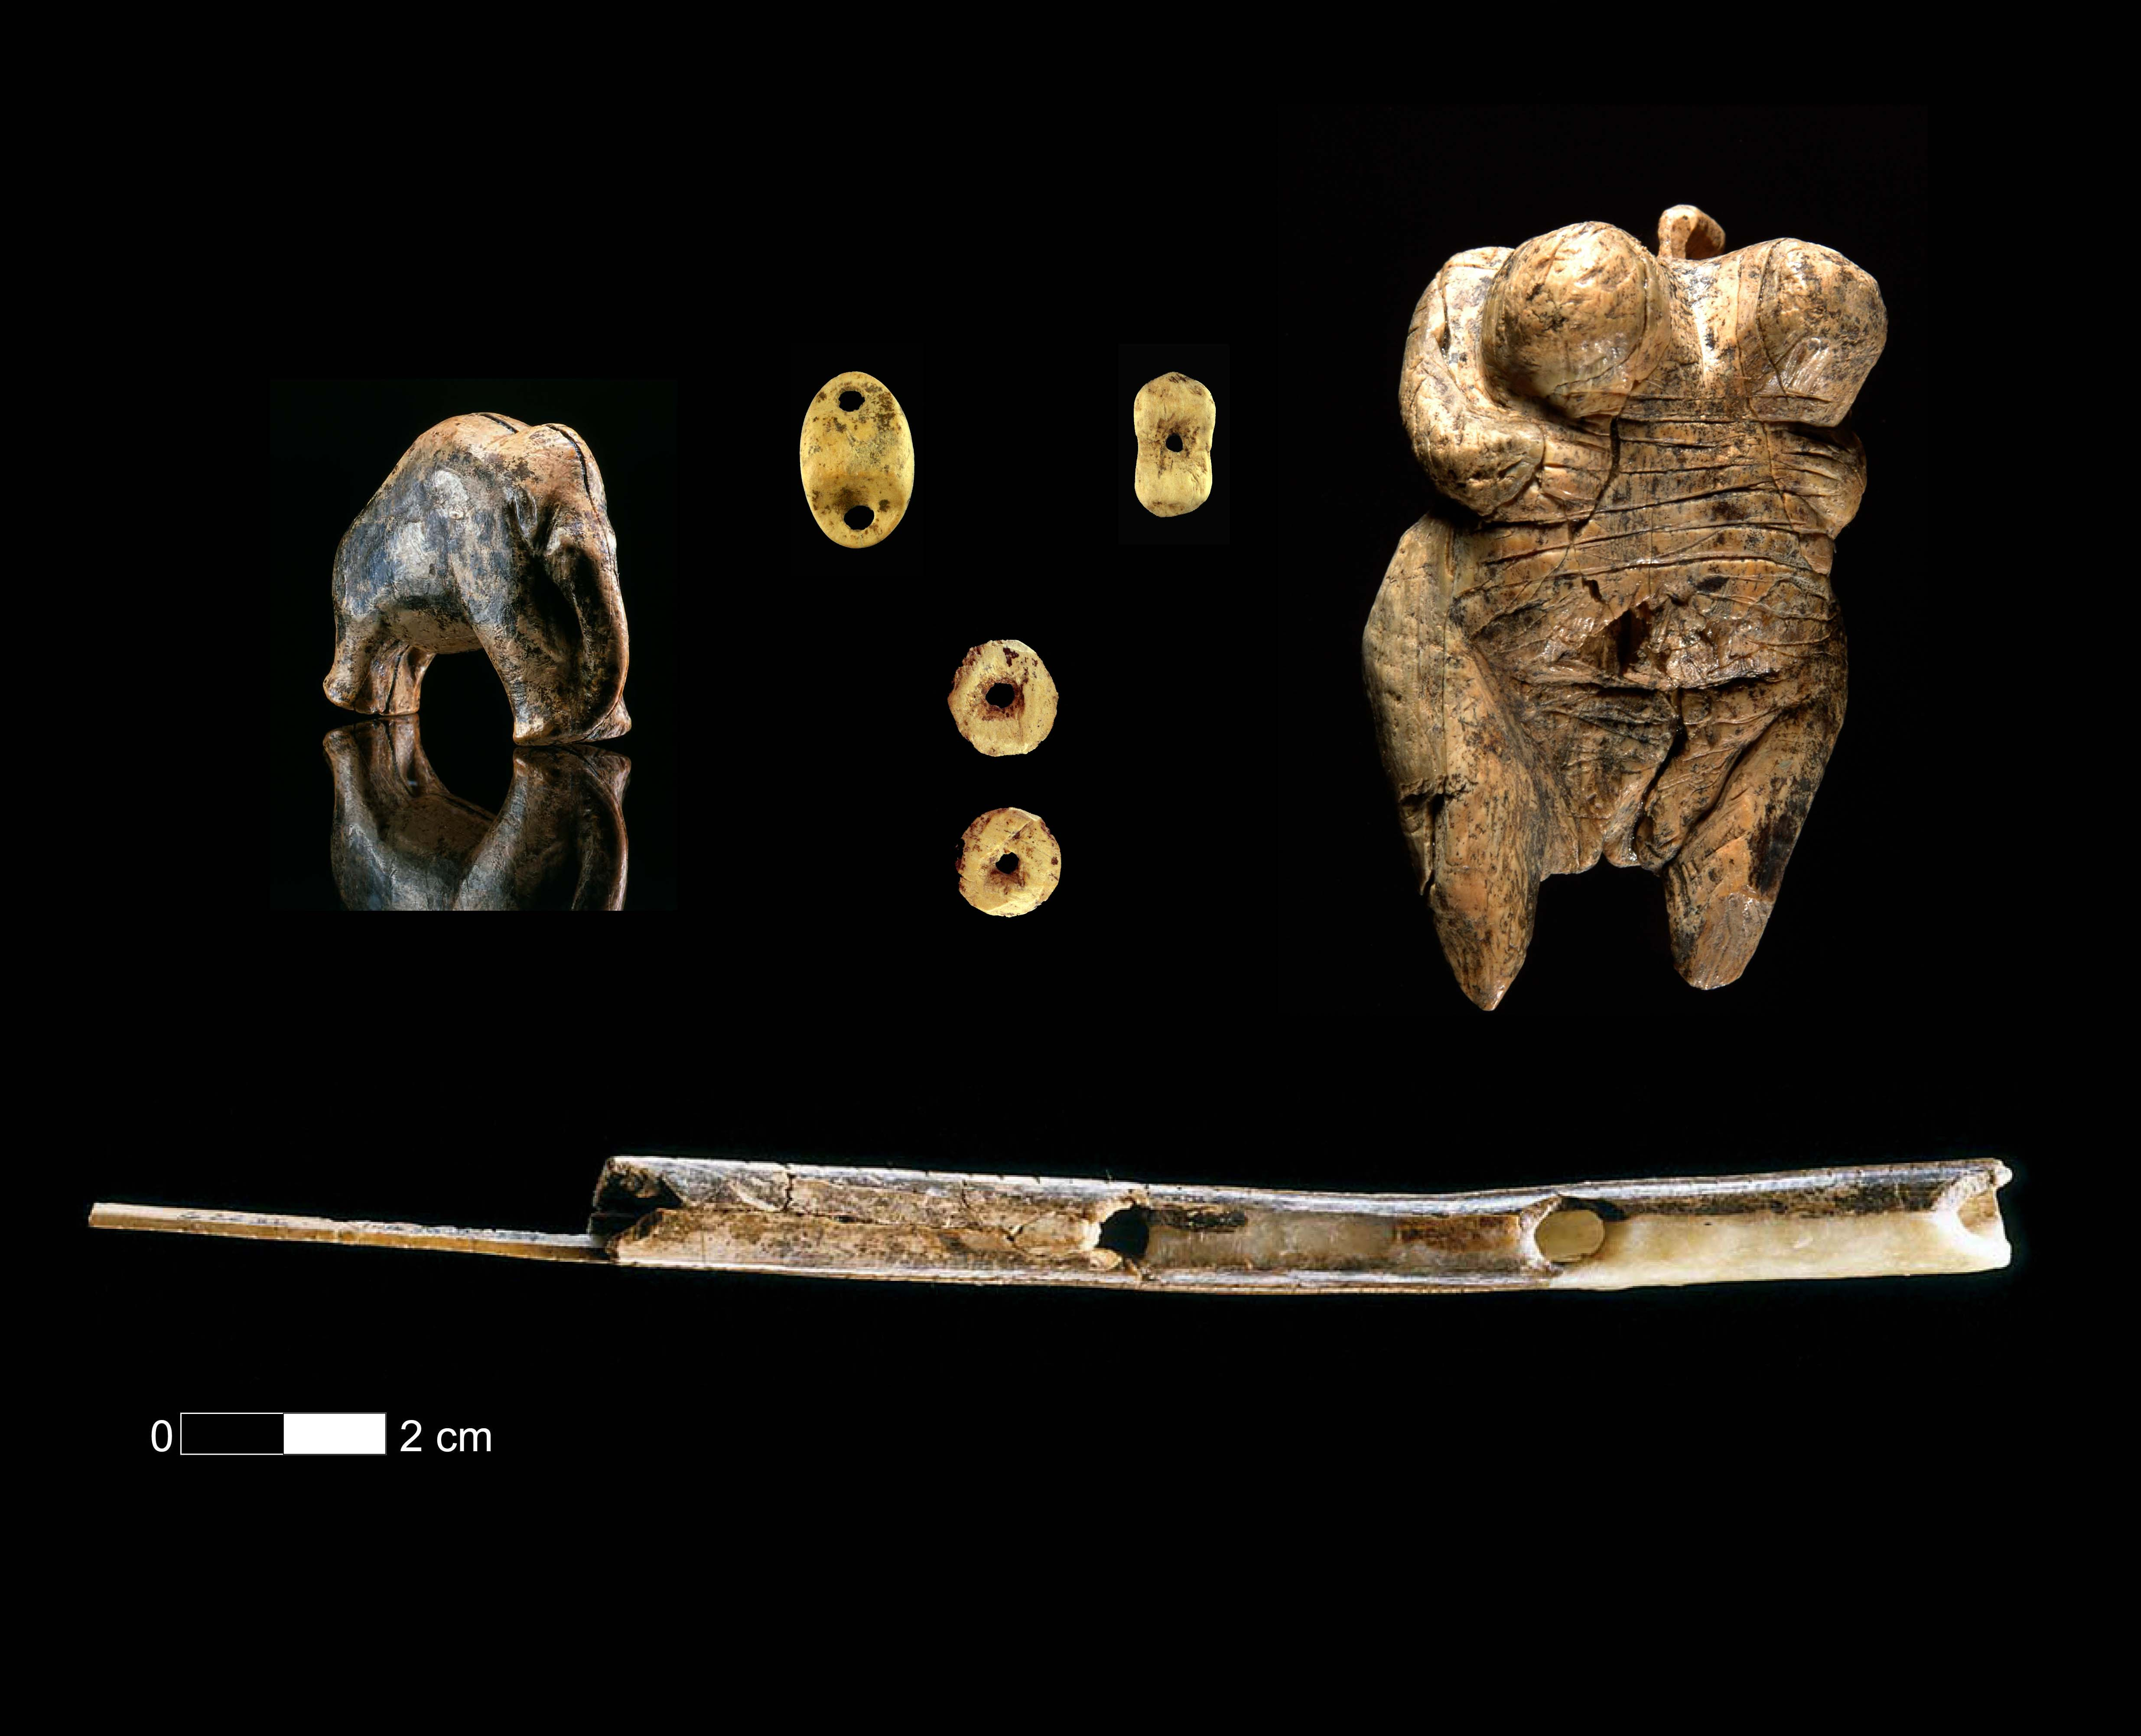 Art, musical instruments and personal ornaments are found at several sites of the Swabian Jura in southwestern Germany.